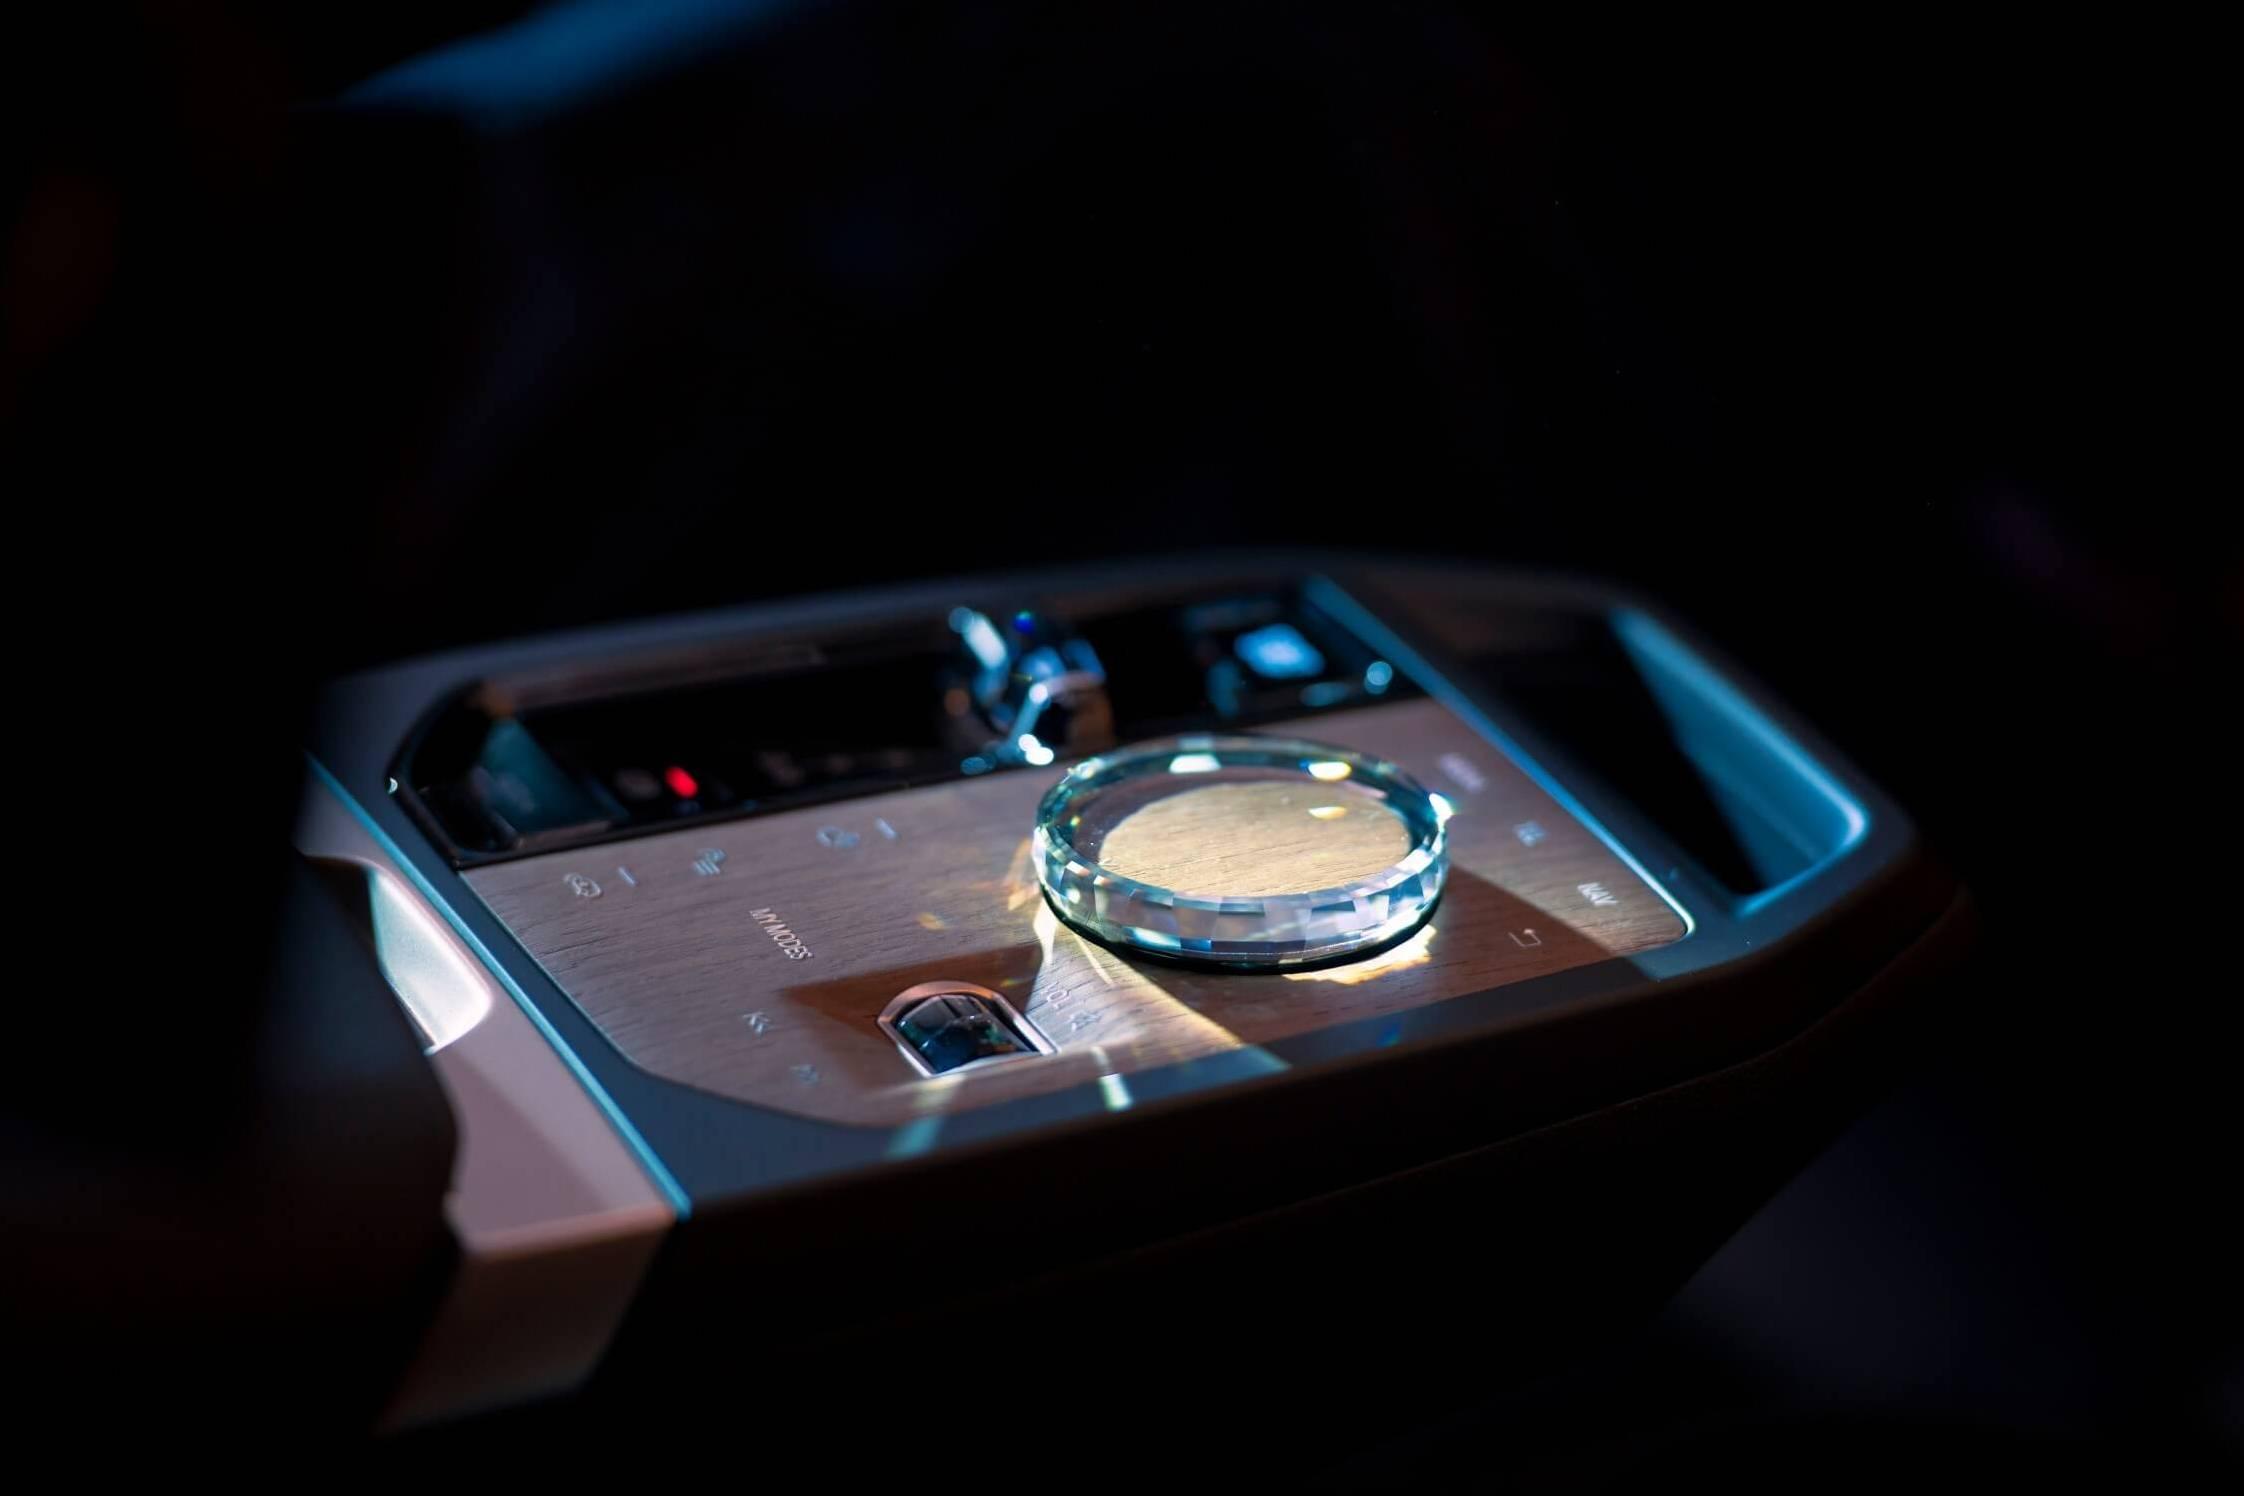 touch control in BMW iDrive 8